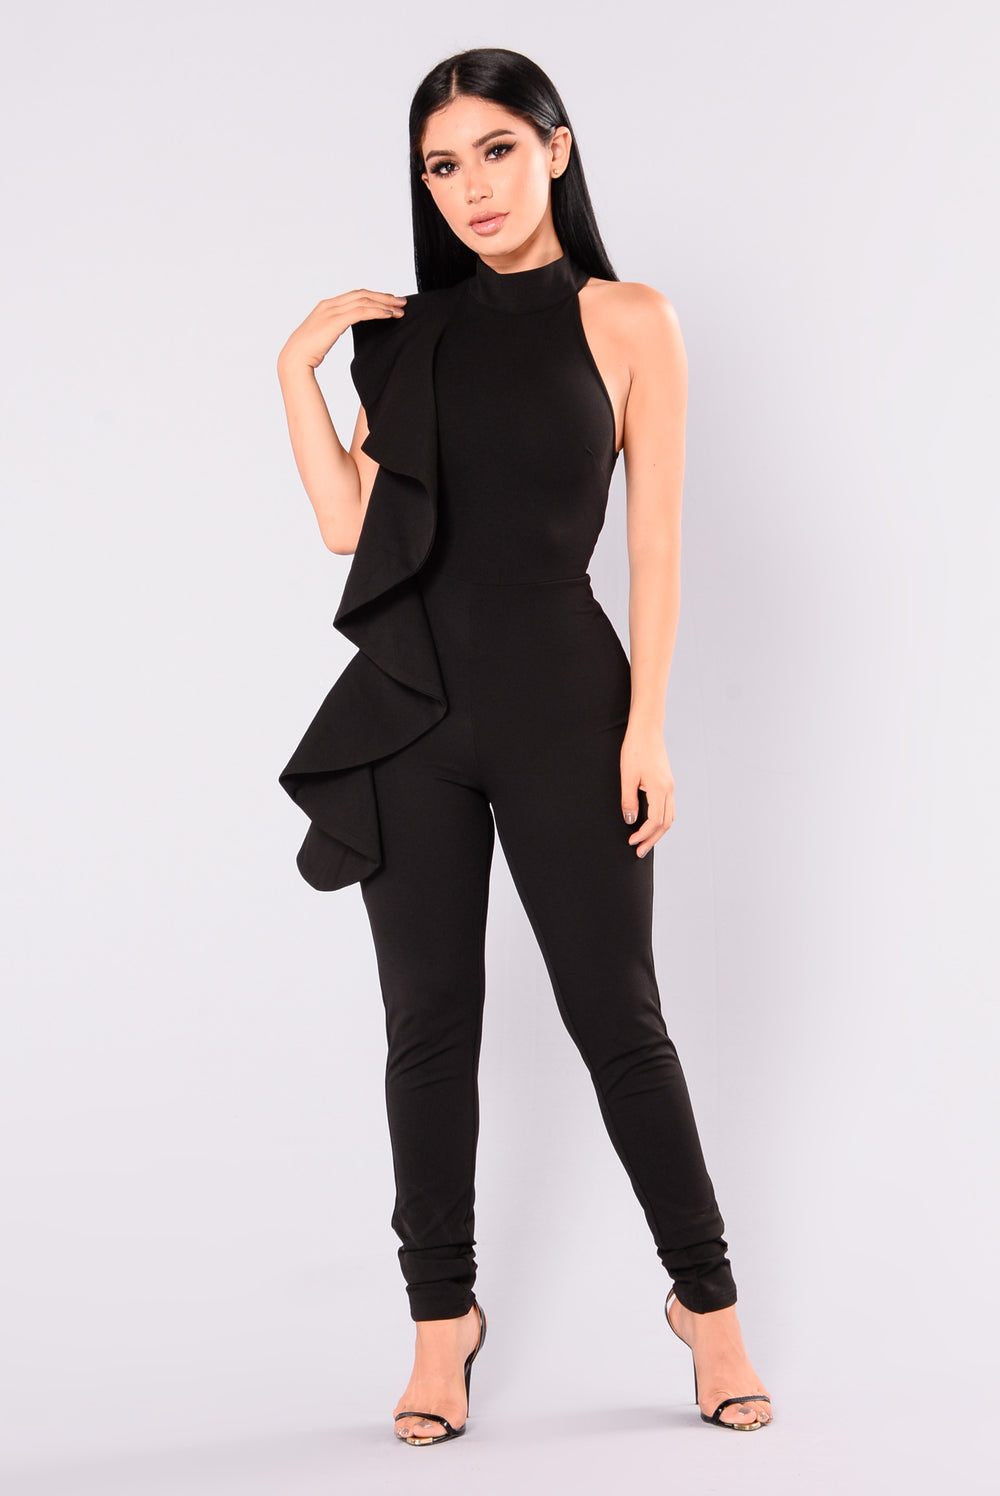 Ruffle Off-the-Shoulder Jumpsuit. 2 Colors. WEB EXCLUSIVE. QUICK VIEW. BACK IN STOCK. $ Plunging Studded Jumpsuit. 2 Colors. WEB EXCLUSIVE. QUICK VIEW. $ black sheer jumpsuit. womens high-rise jeans. dresses women. wrap .